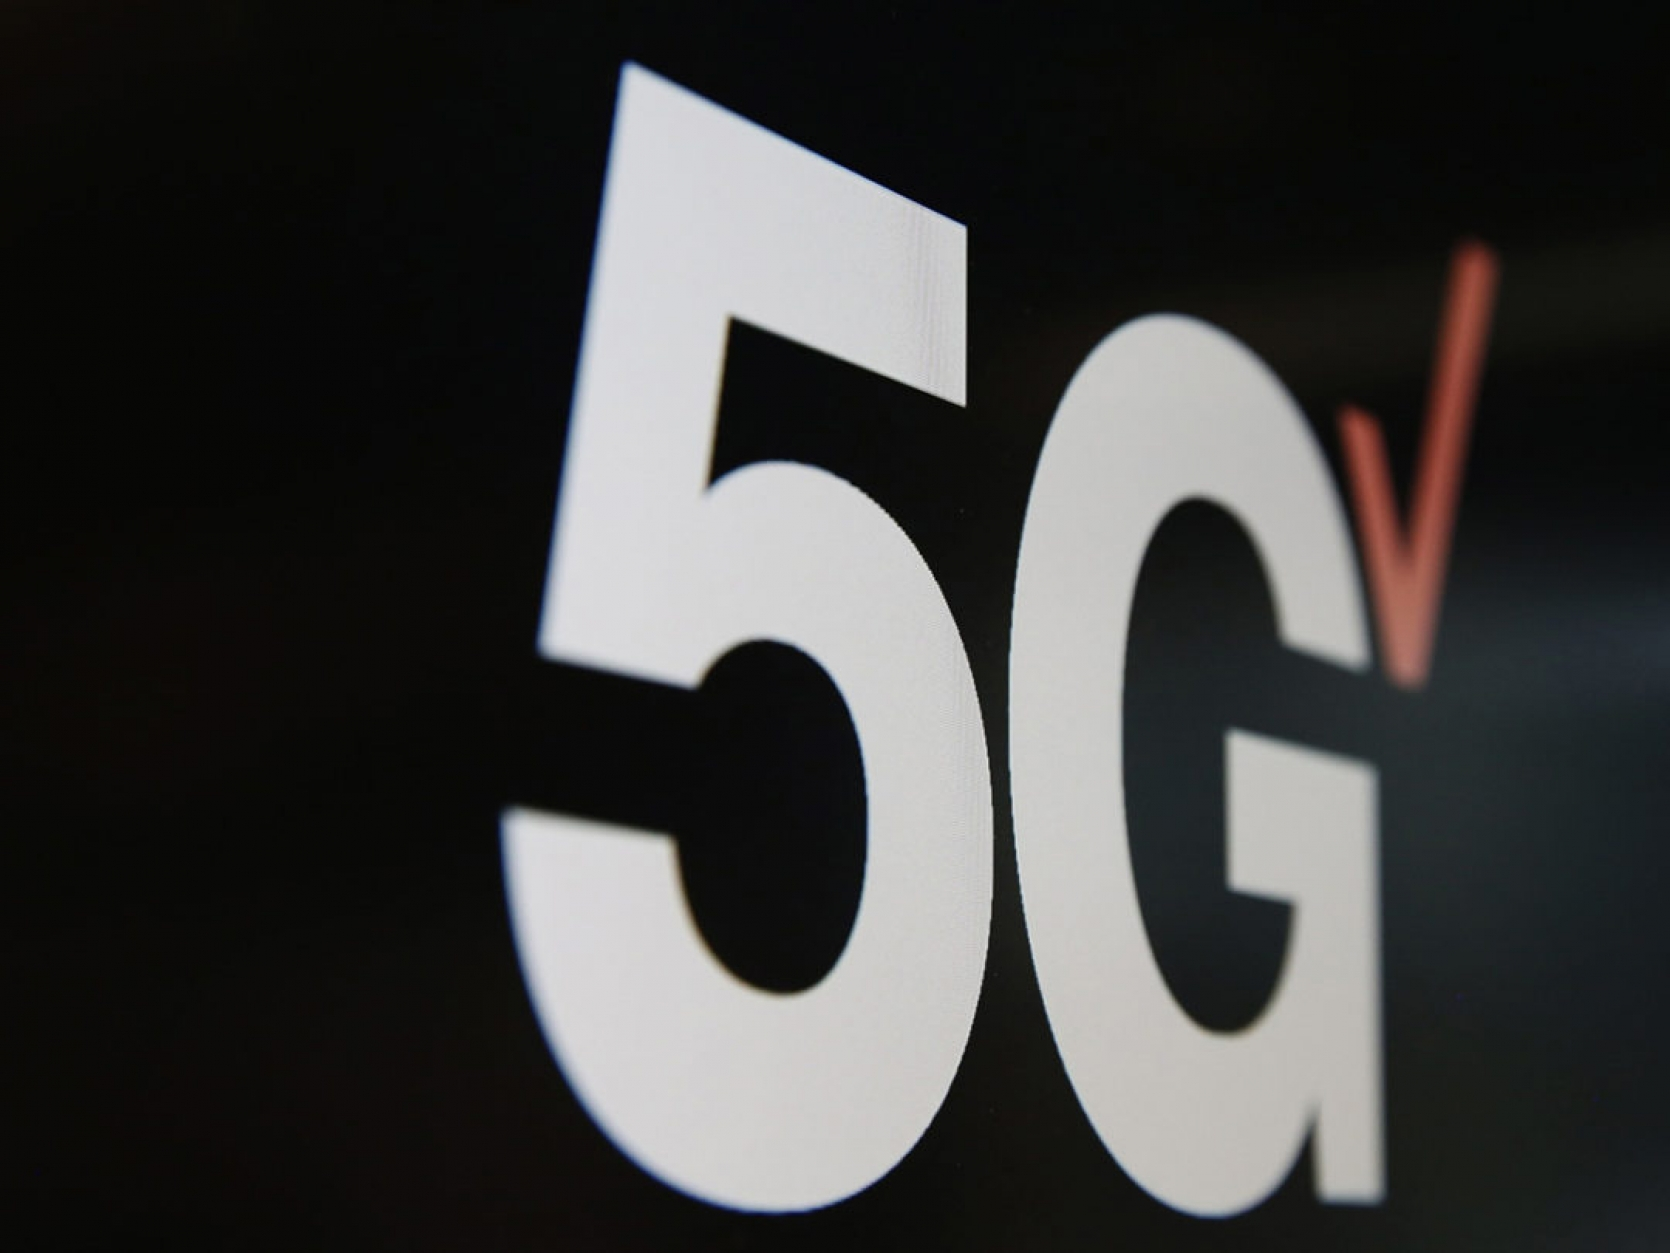 5G IS ON THE WAY: WHAT WILL IT MEAN FOR SUPPLY CHAINS?